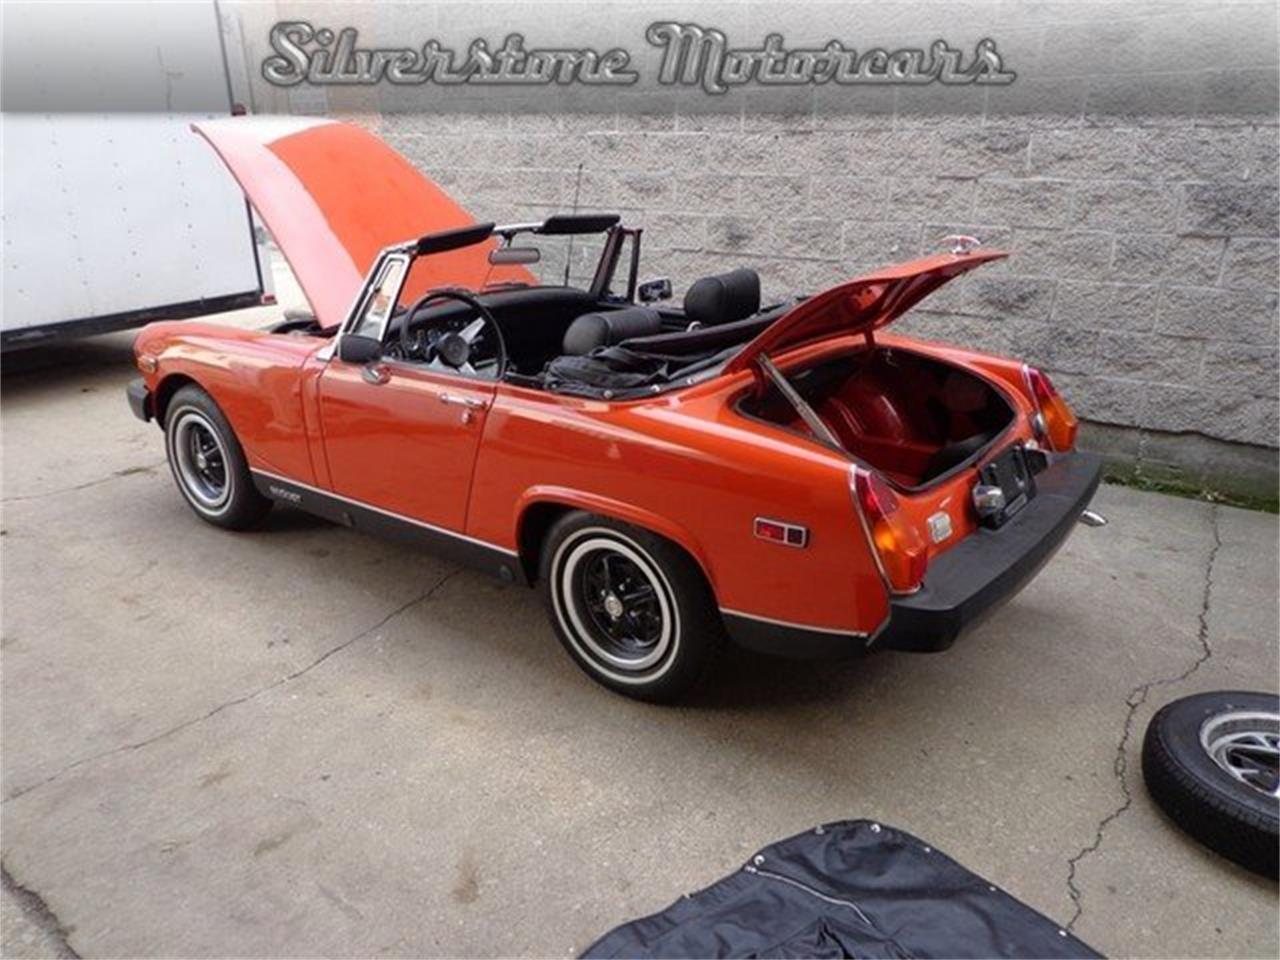 Large Picture of 1976 Midget - $7,500.00 Offered by Silverstone Motorcars - F8K7